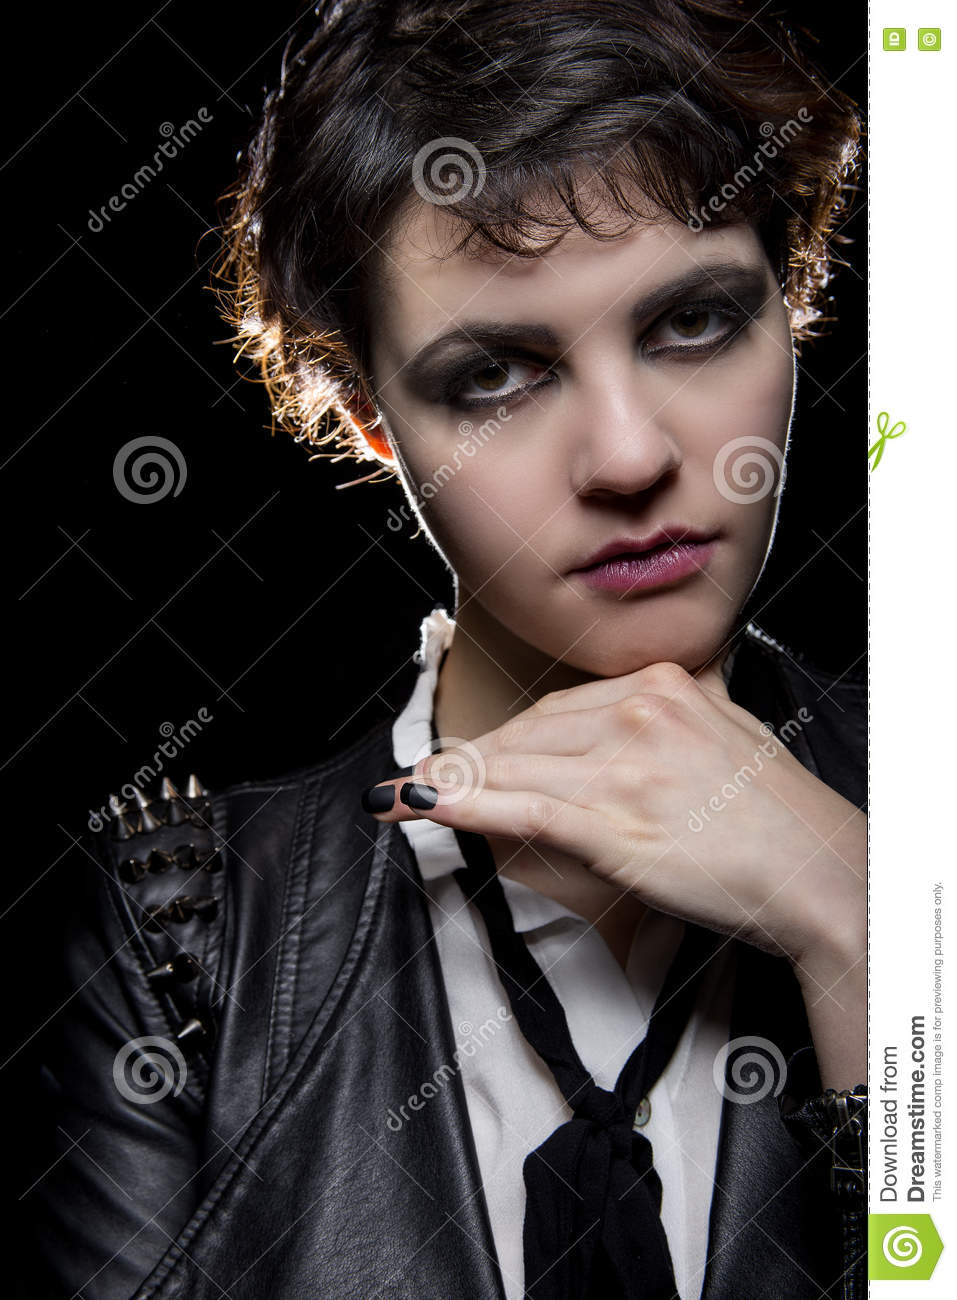 Black Nails on Goth Model stock image. Image of leather - 78764541